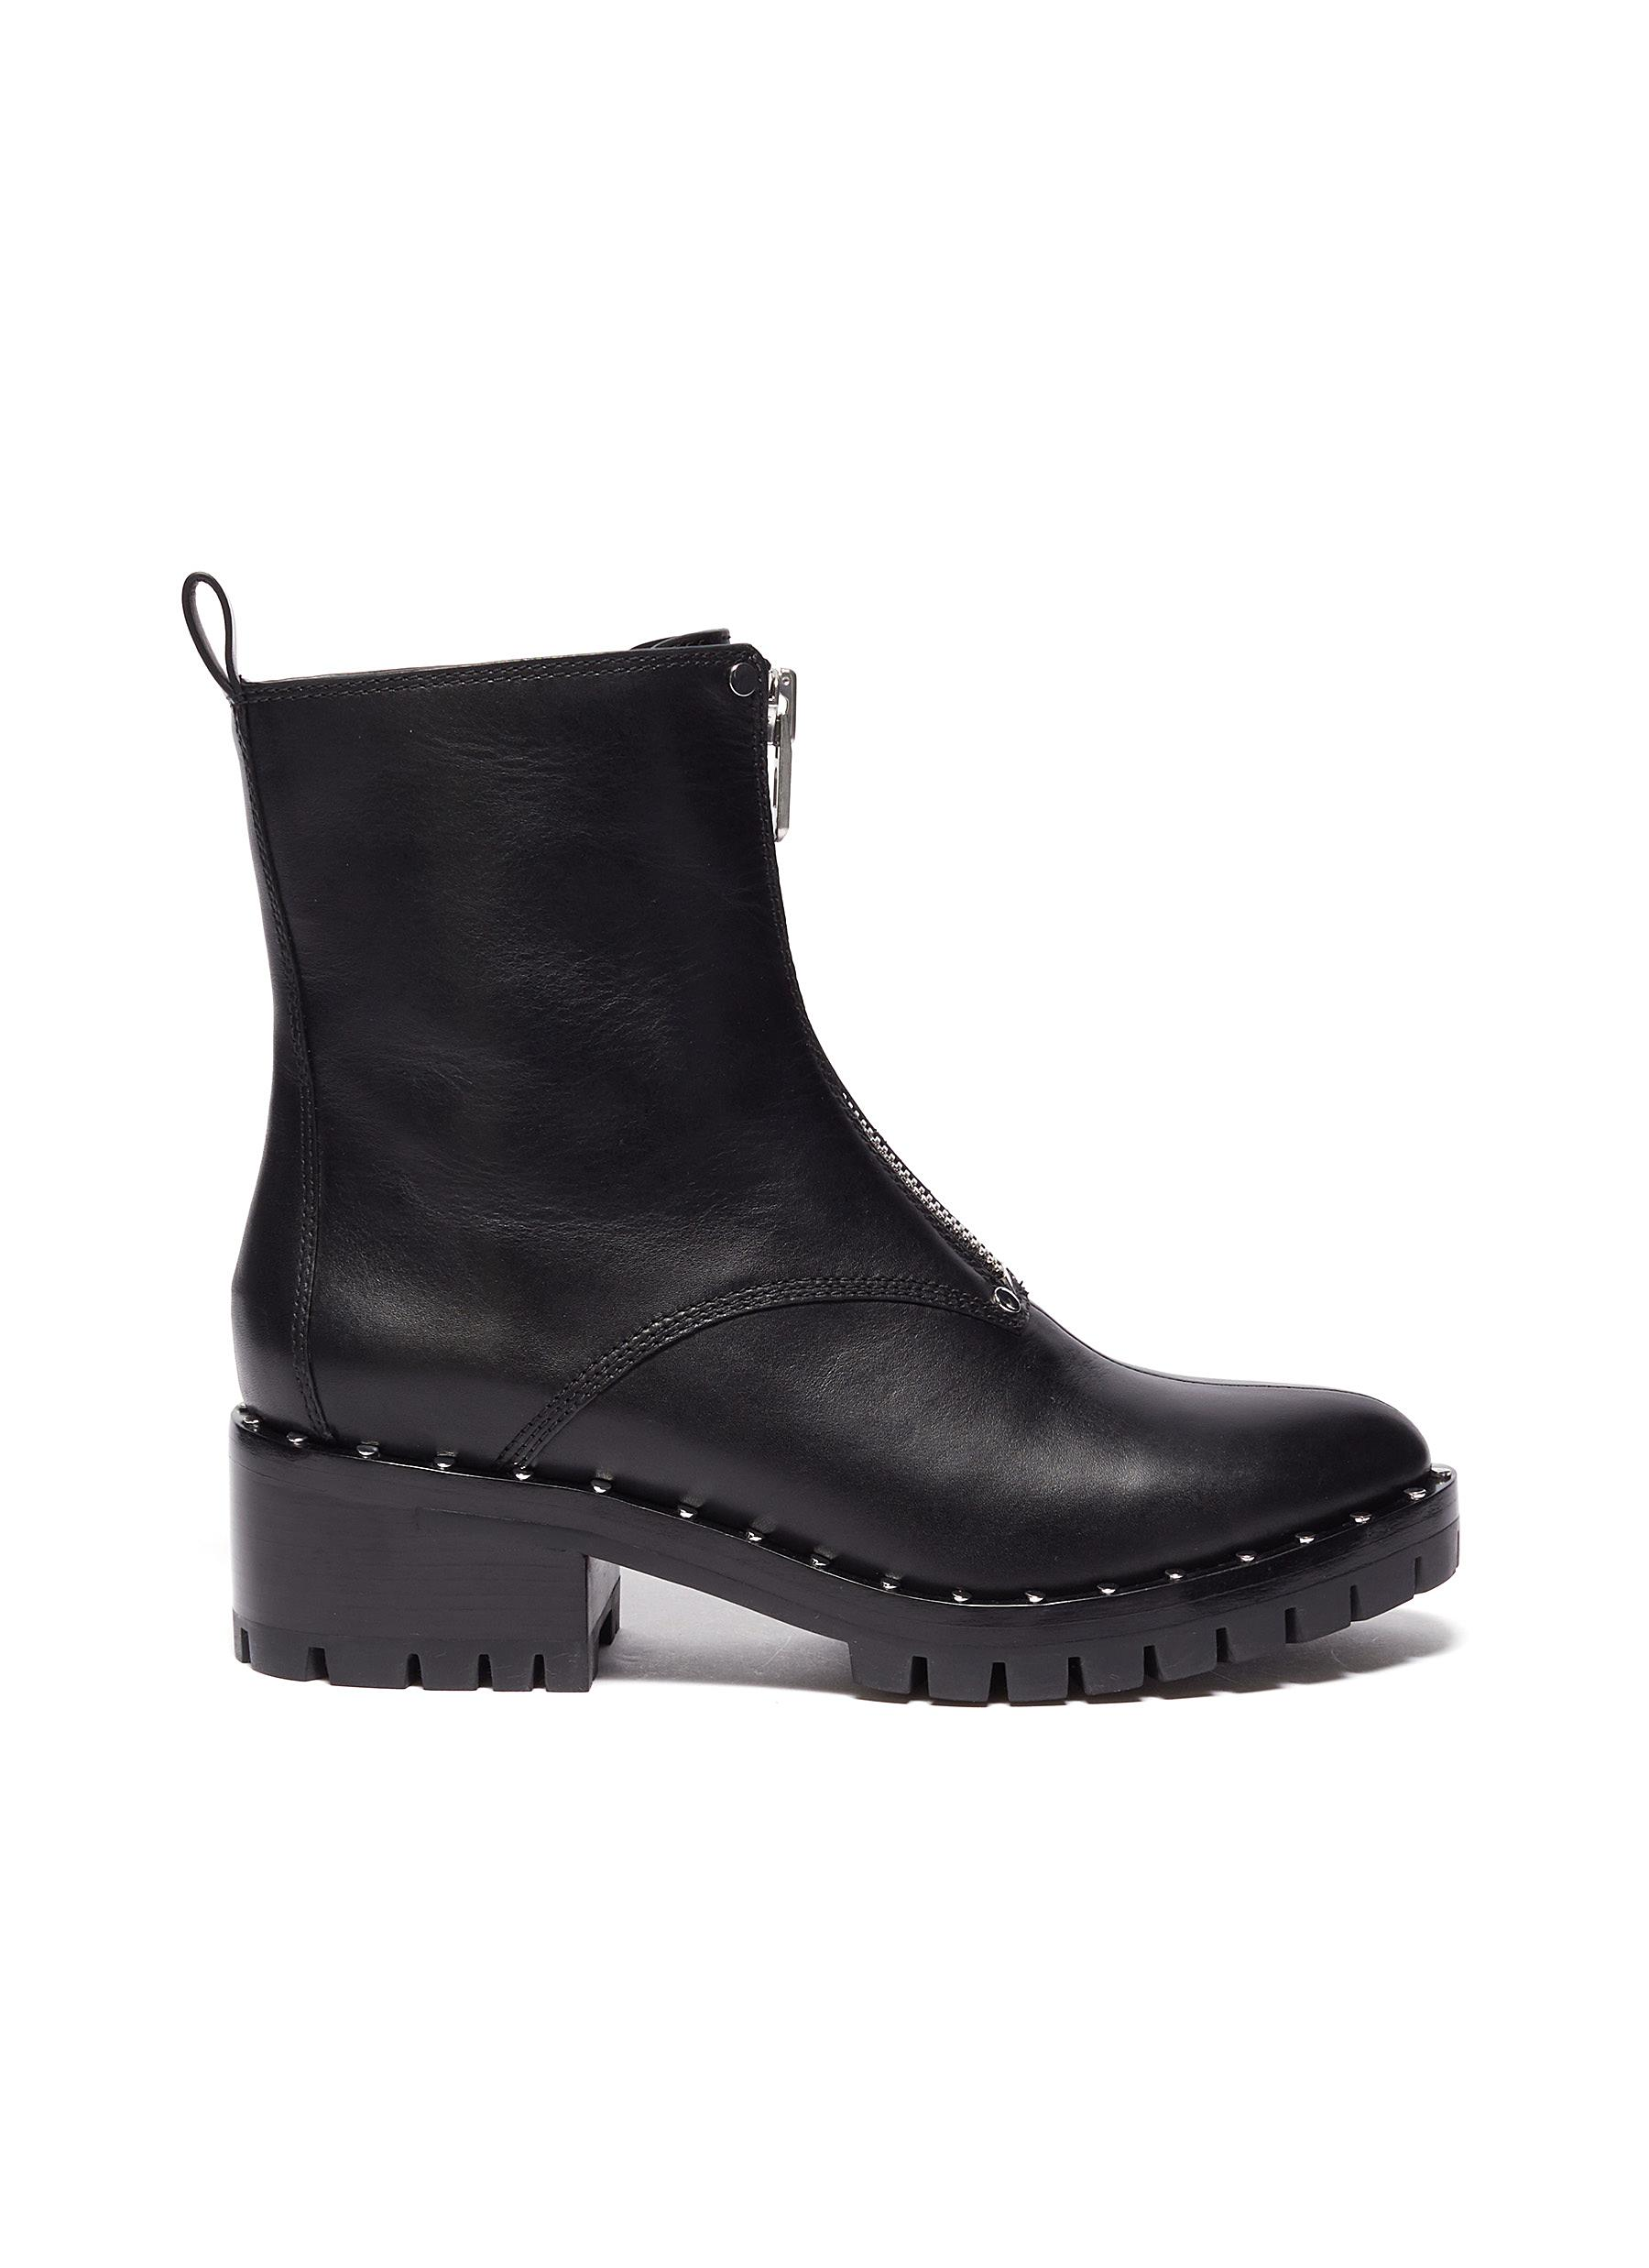 3.1 Phillip Lim Boots Stud embellished leather combat boots